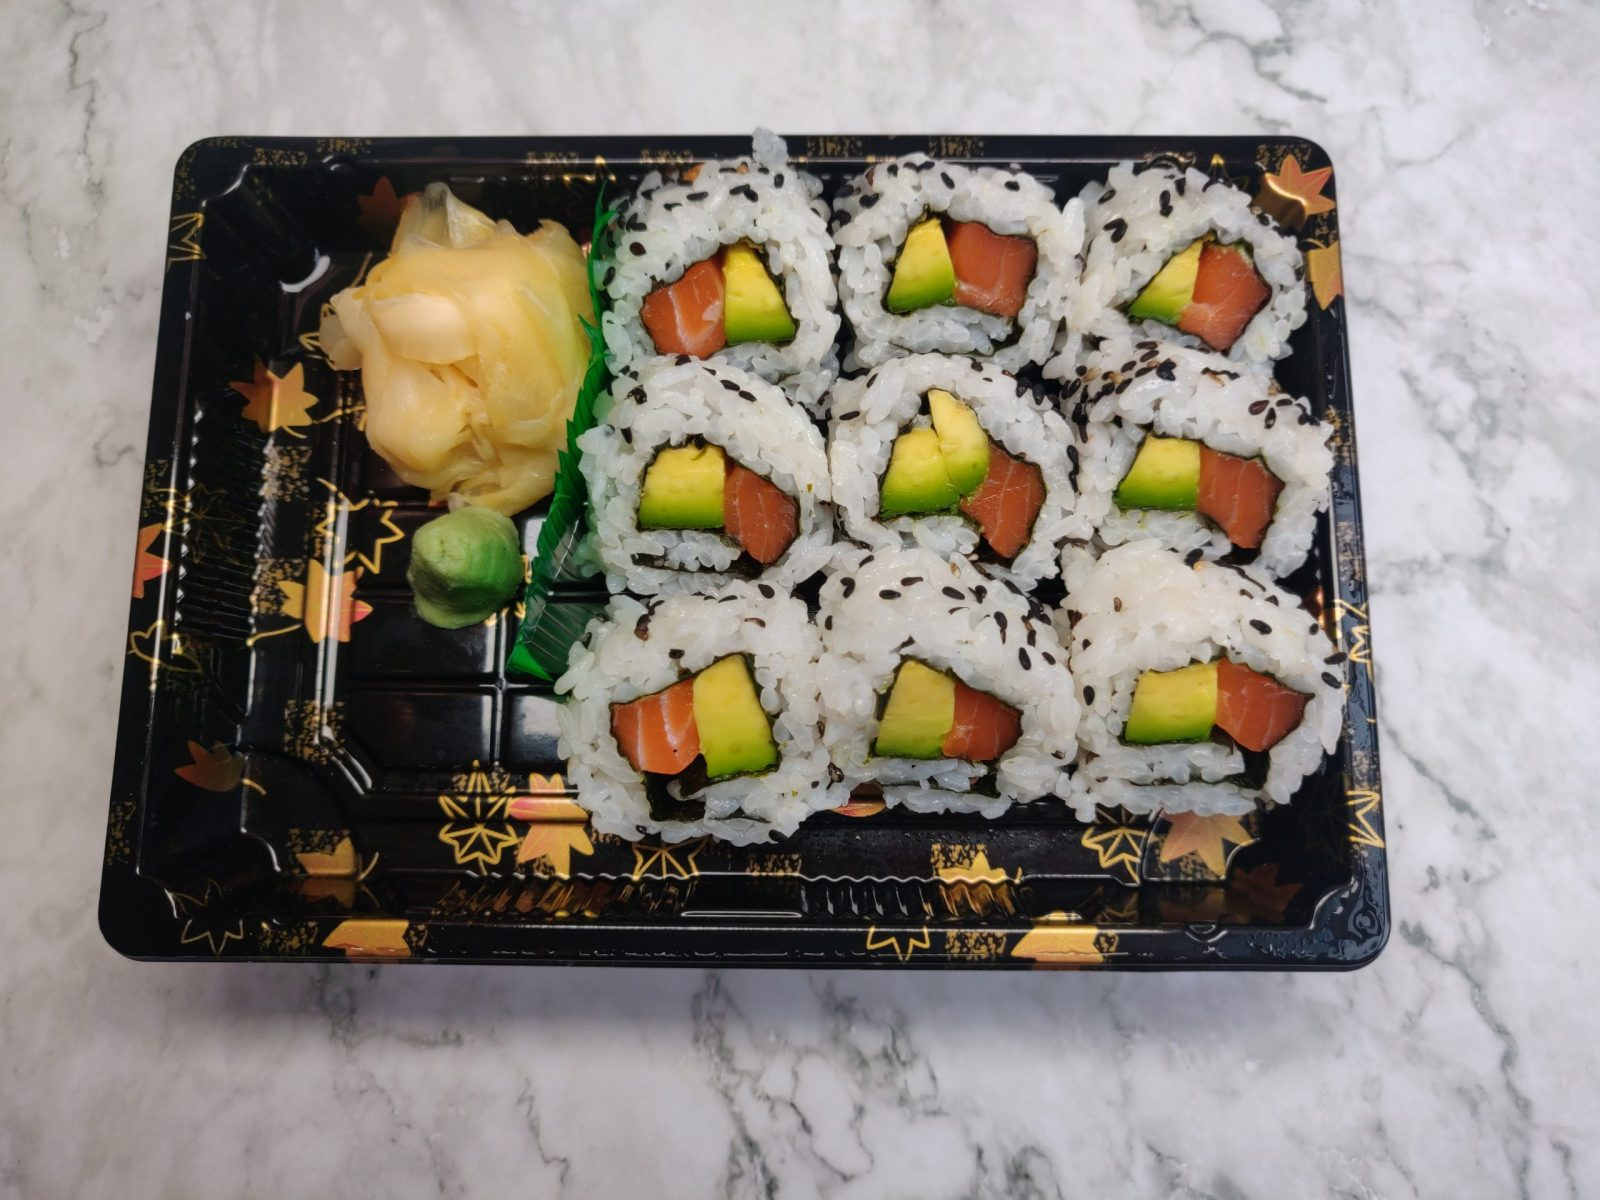 9 Uramaki (Salmon & Avocado)